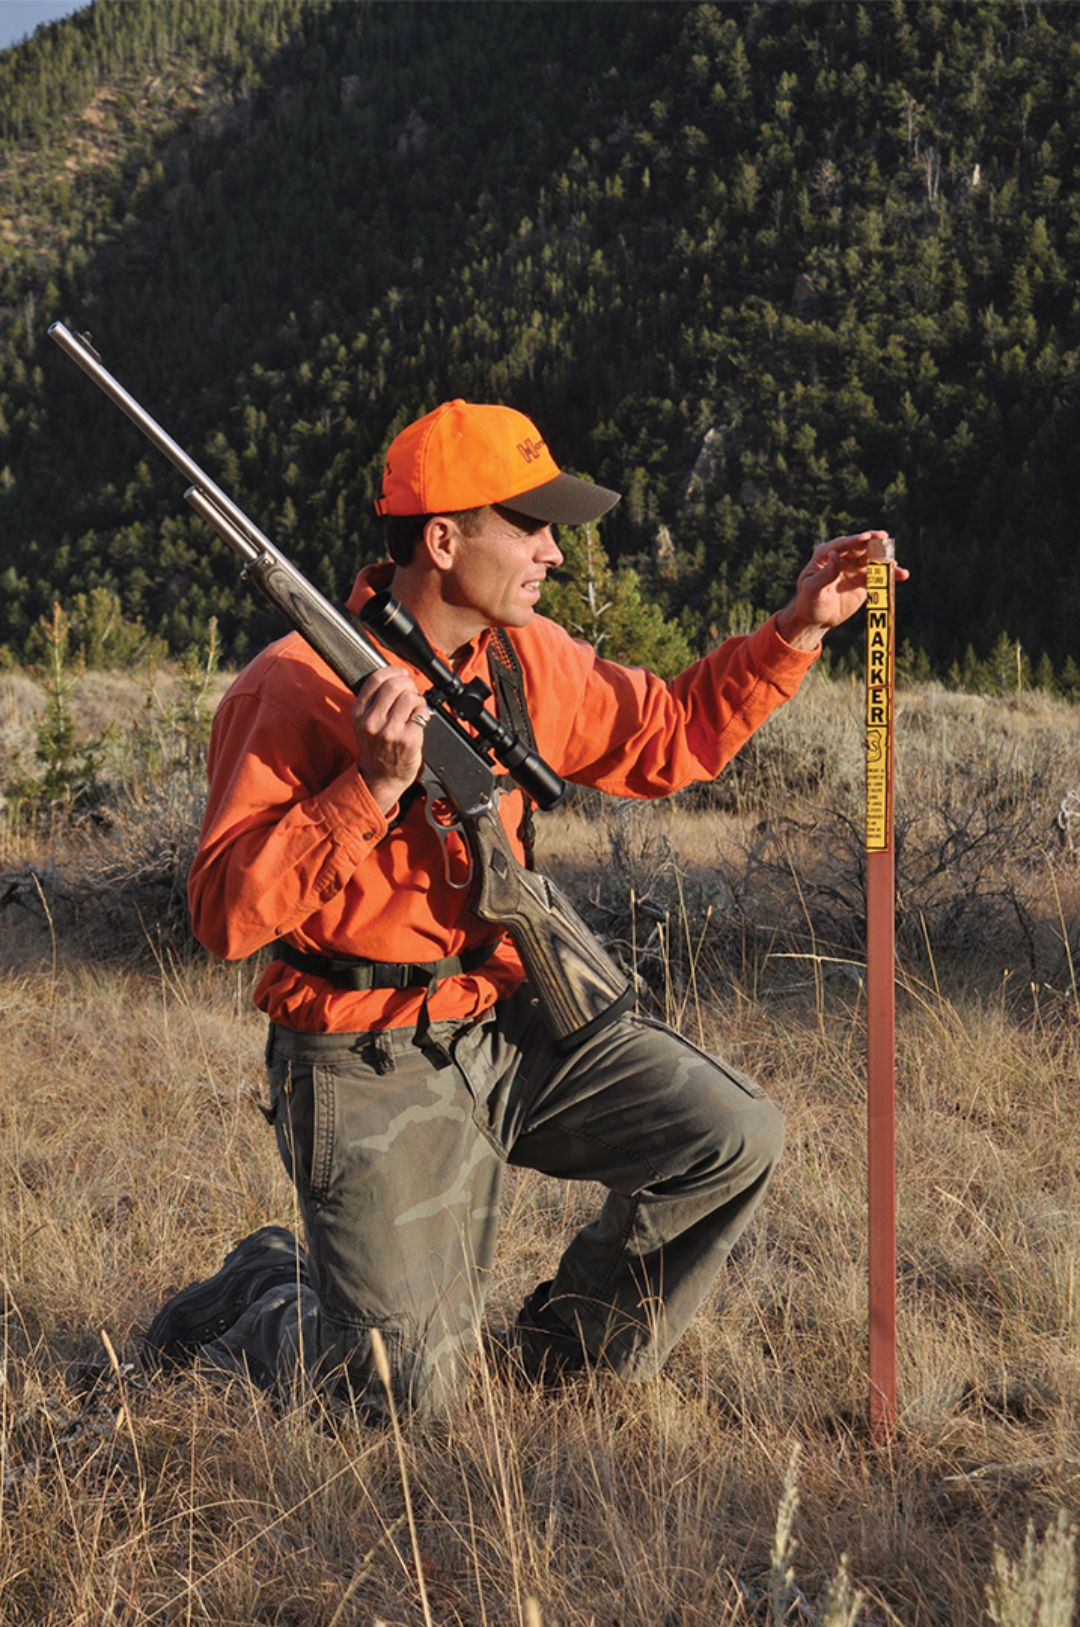 Keeping tabs on land boundaries is critical to hunting small parcels of public land. In addition to markers, GPS software that shows land ownership can keep a hunter on track.